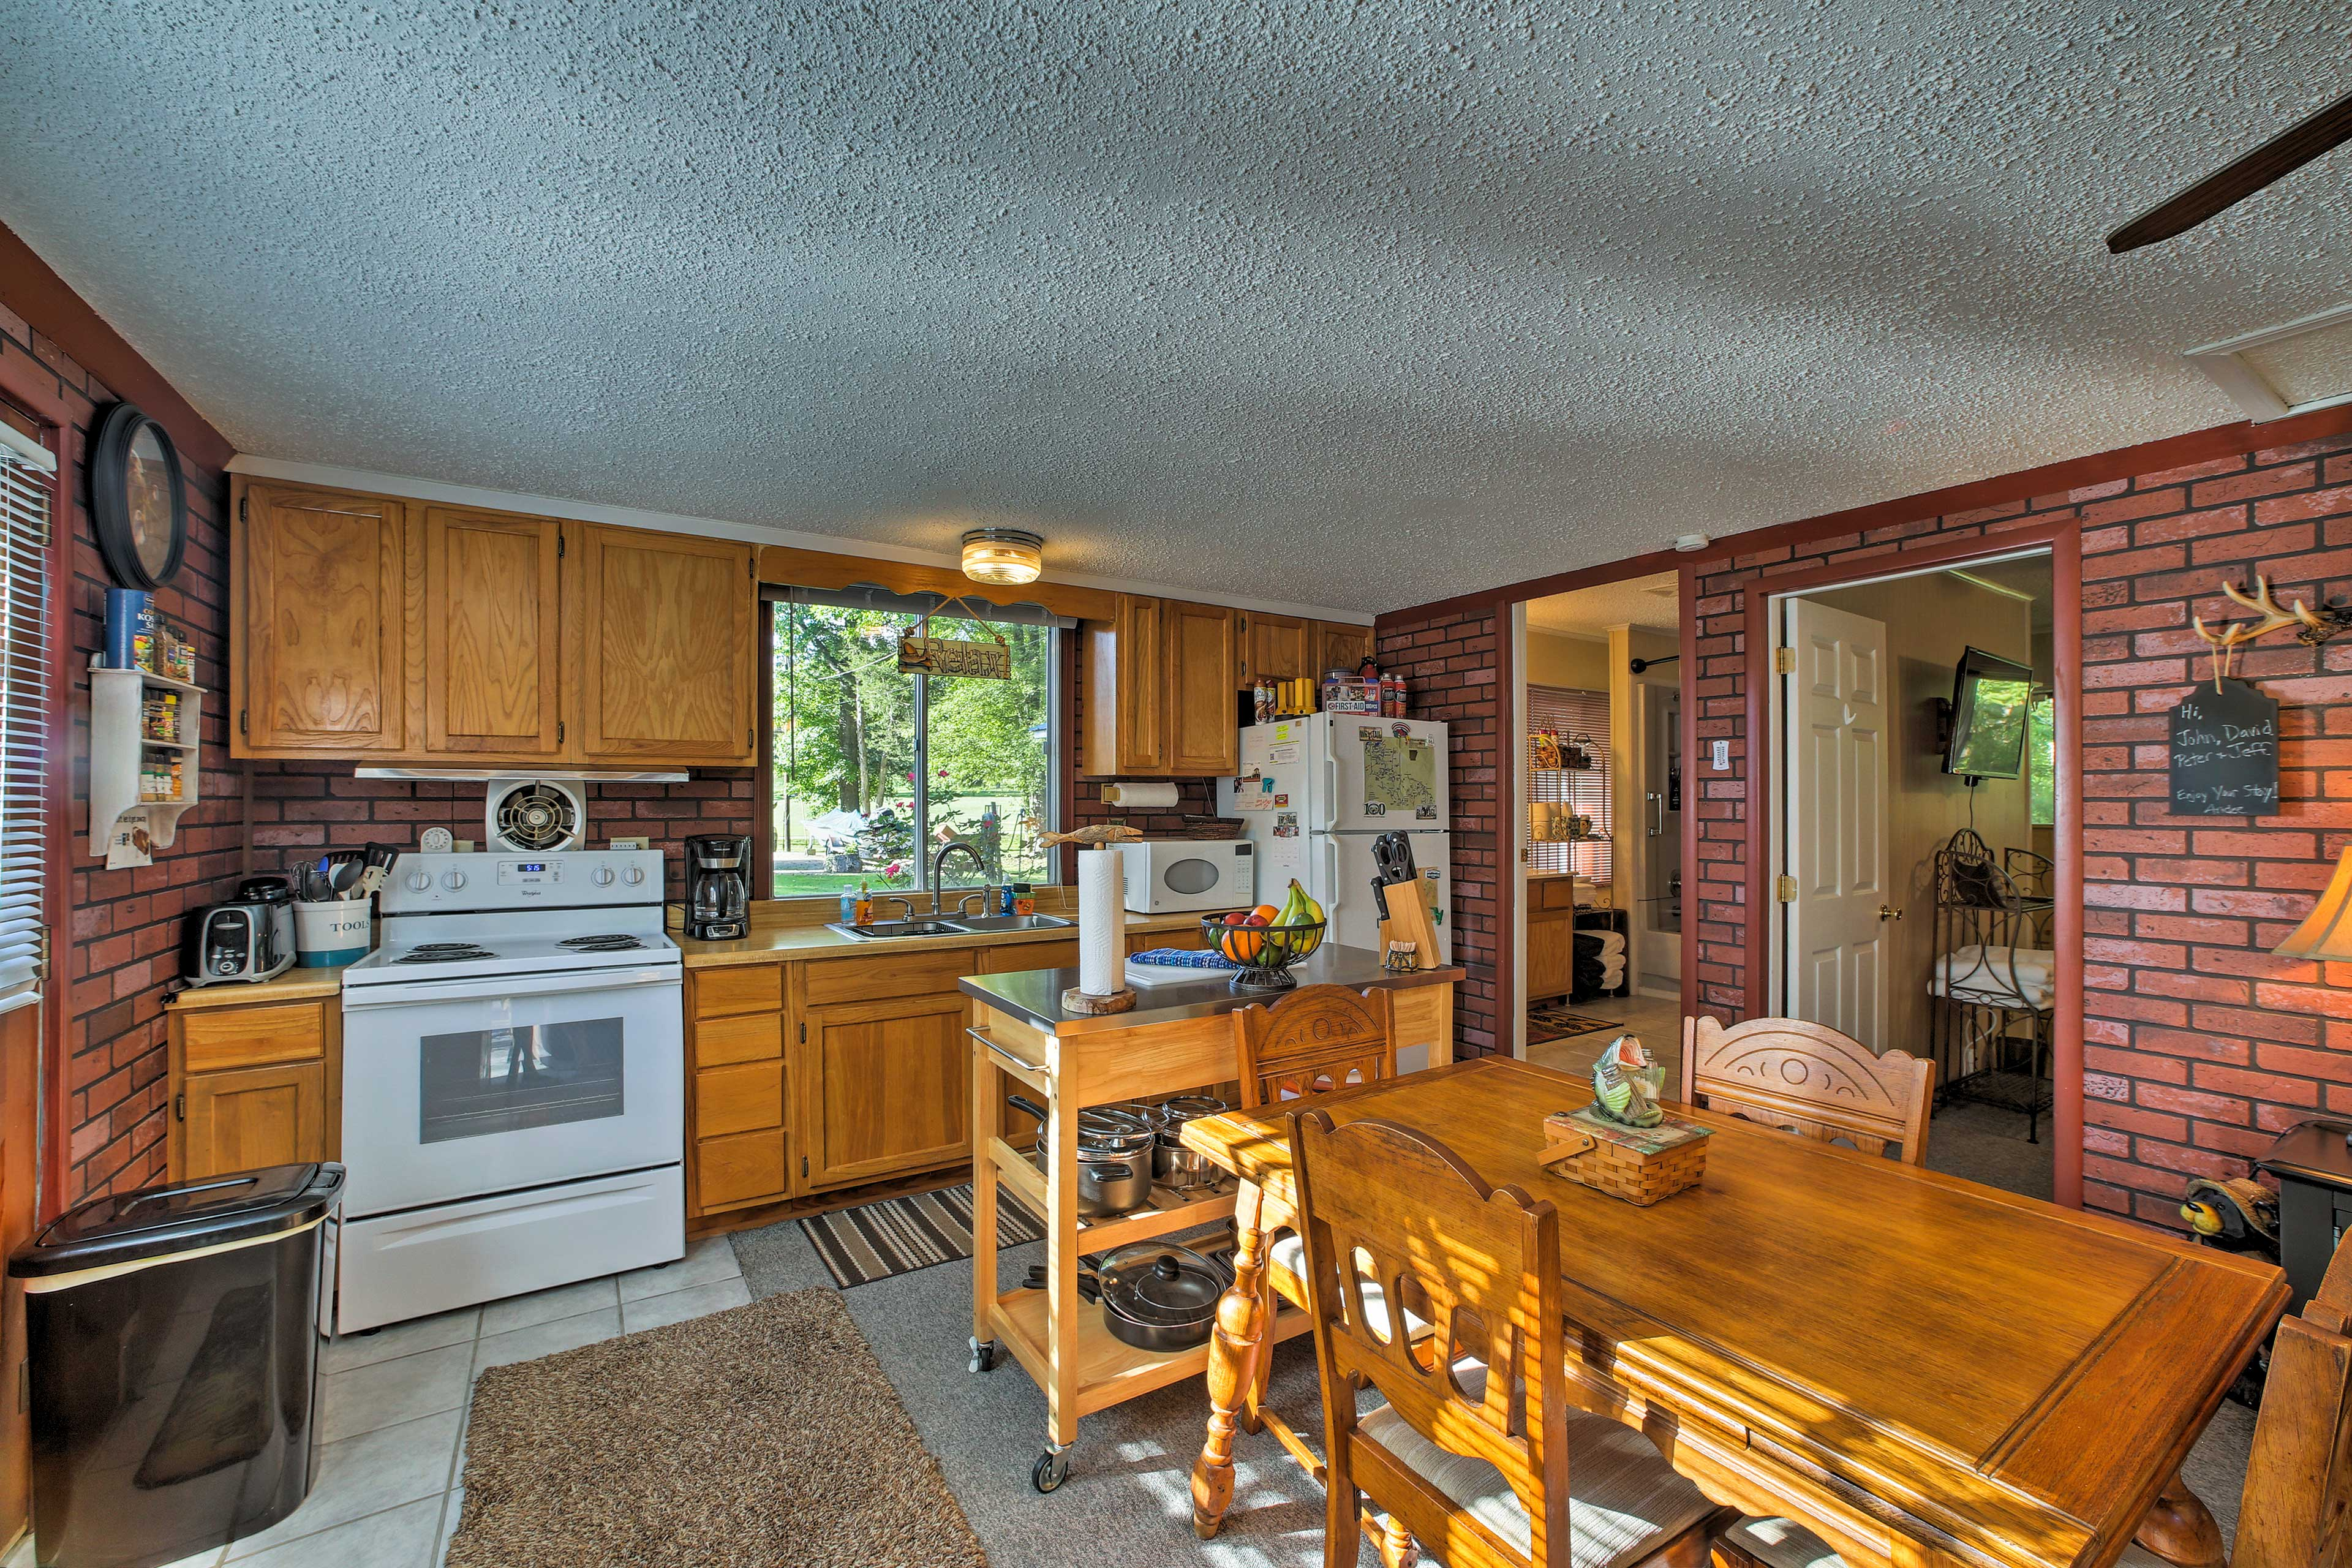 Whip up tasty homemade meals in the well-equipped kitchen.